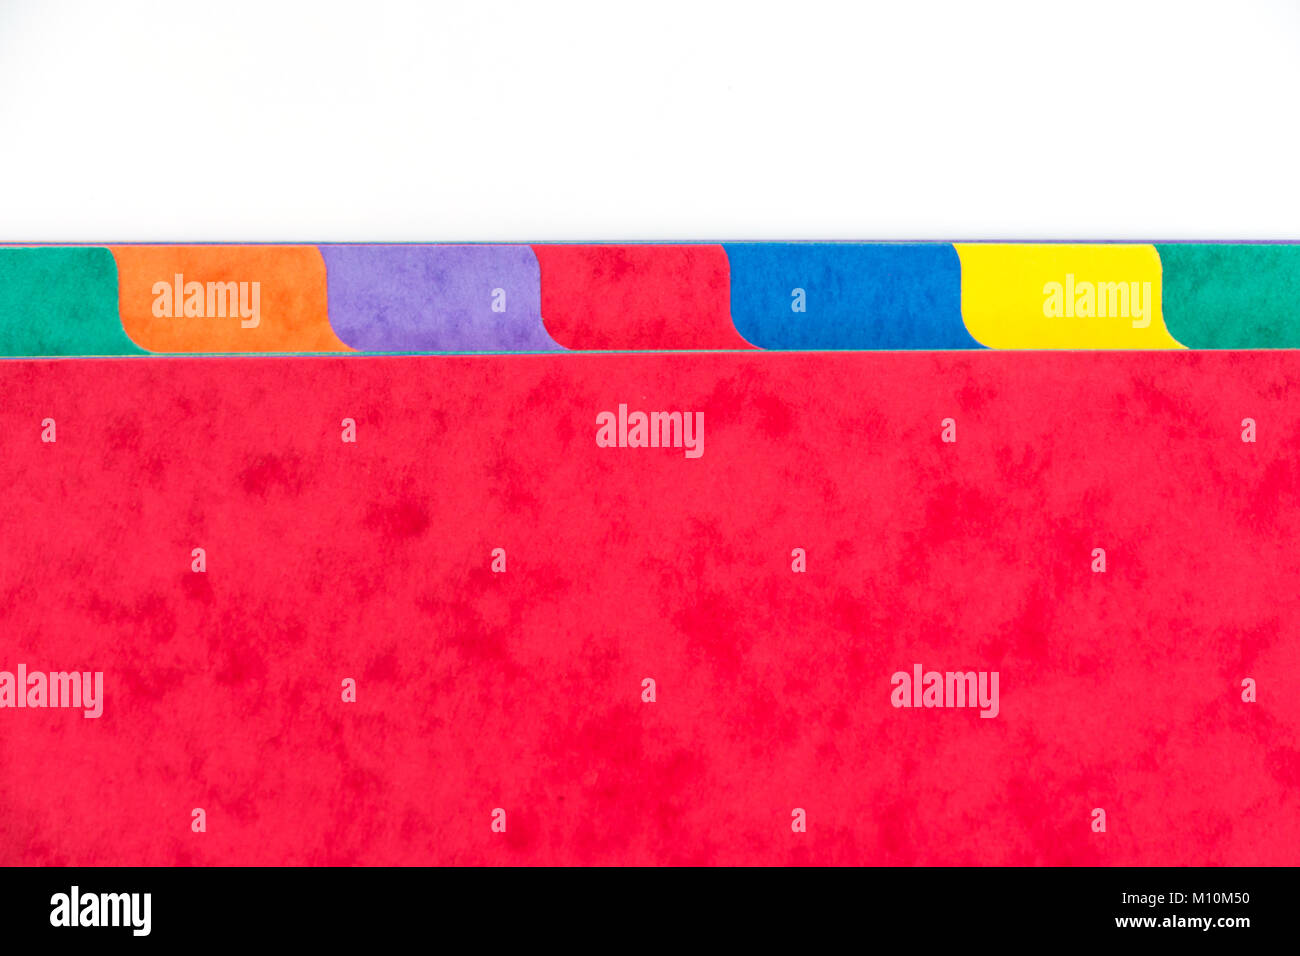 Photo of colorful folder dividers with copy space, white background - Stock Image